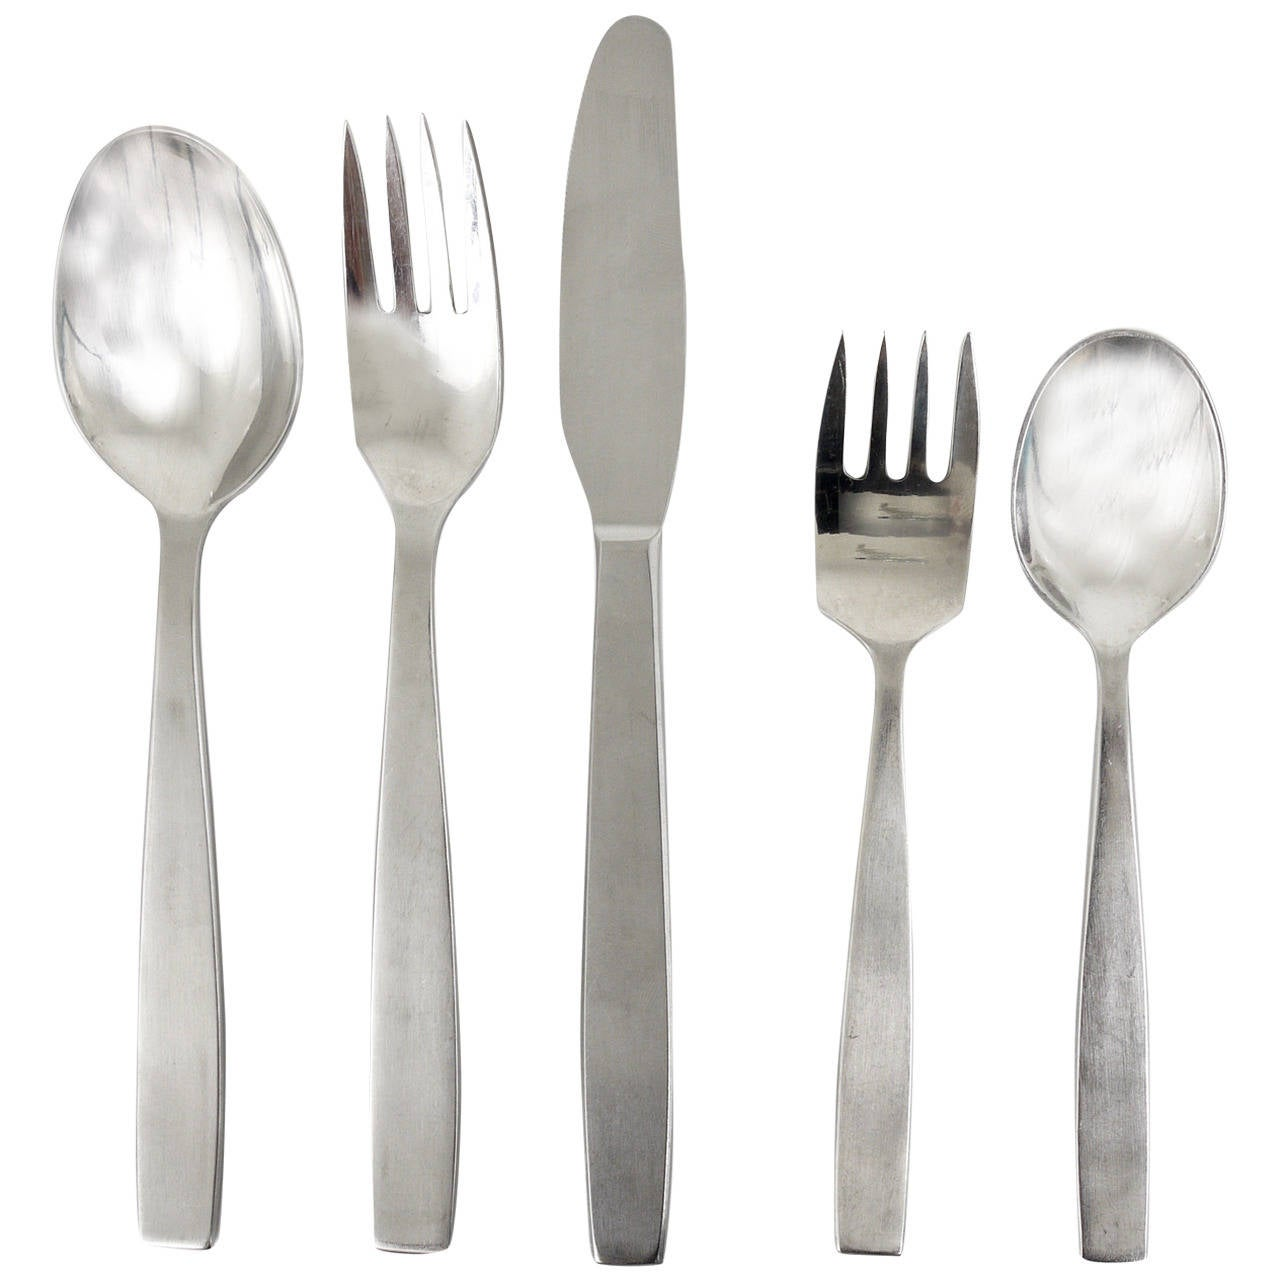 Amboss Austria 2050 Flatware Cutlery for Six Persons by Helmut Alder, 1950s